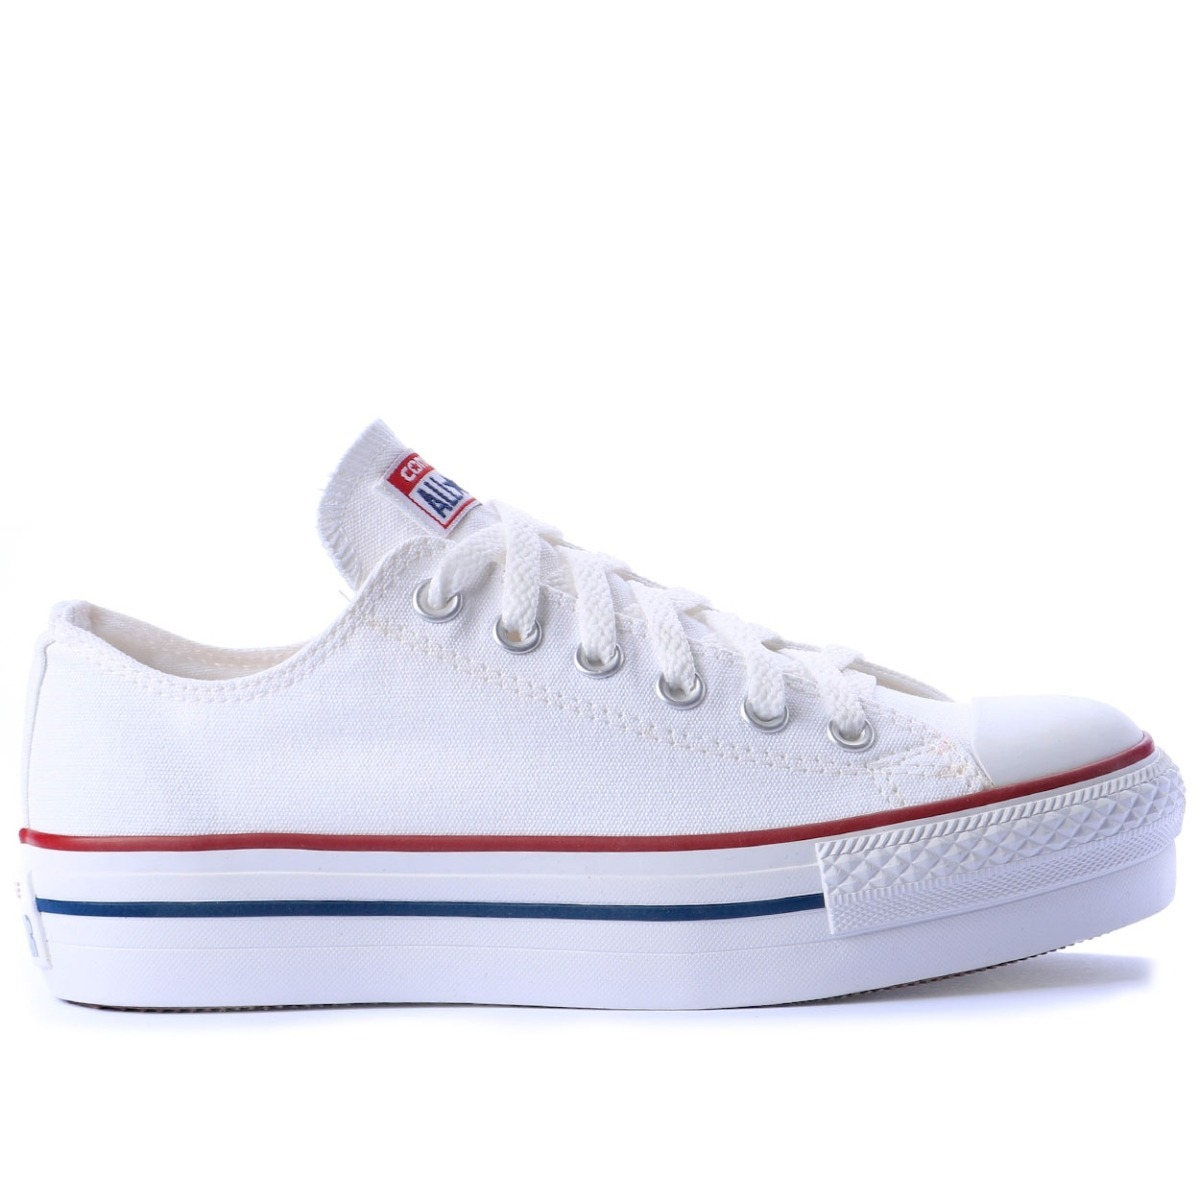 2125eff8c8 Carregando zoom. compro converse all star